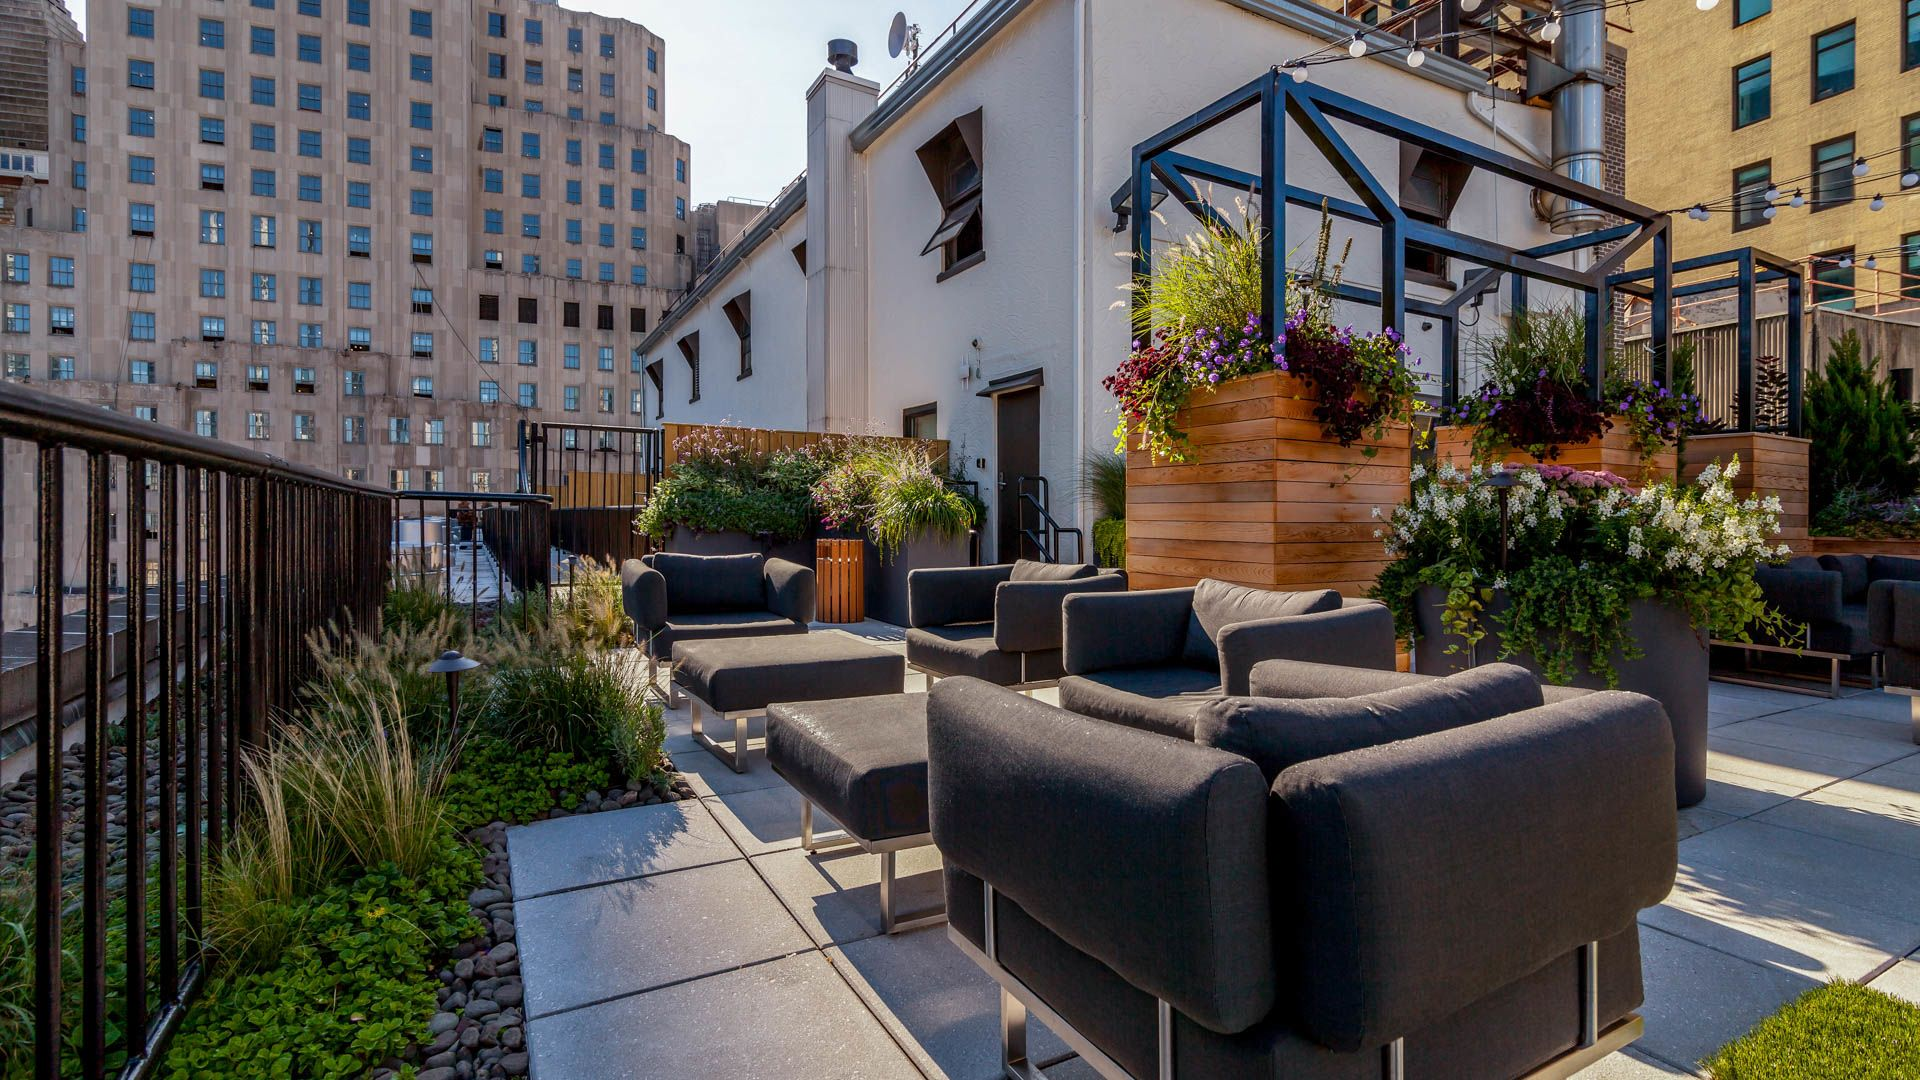 71 Broadway Apartments - Rooftop Terrace